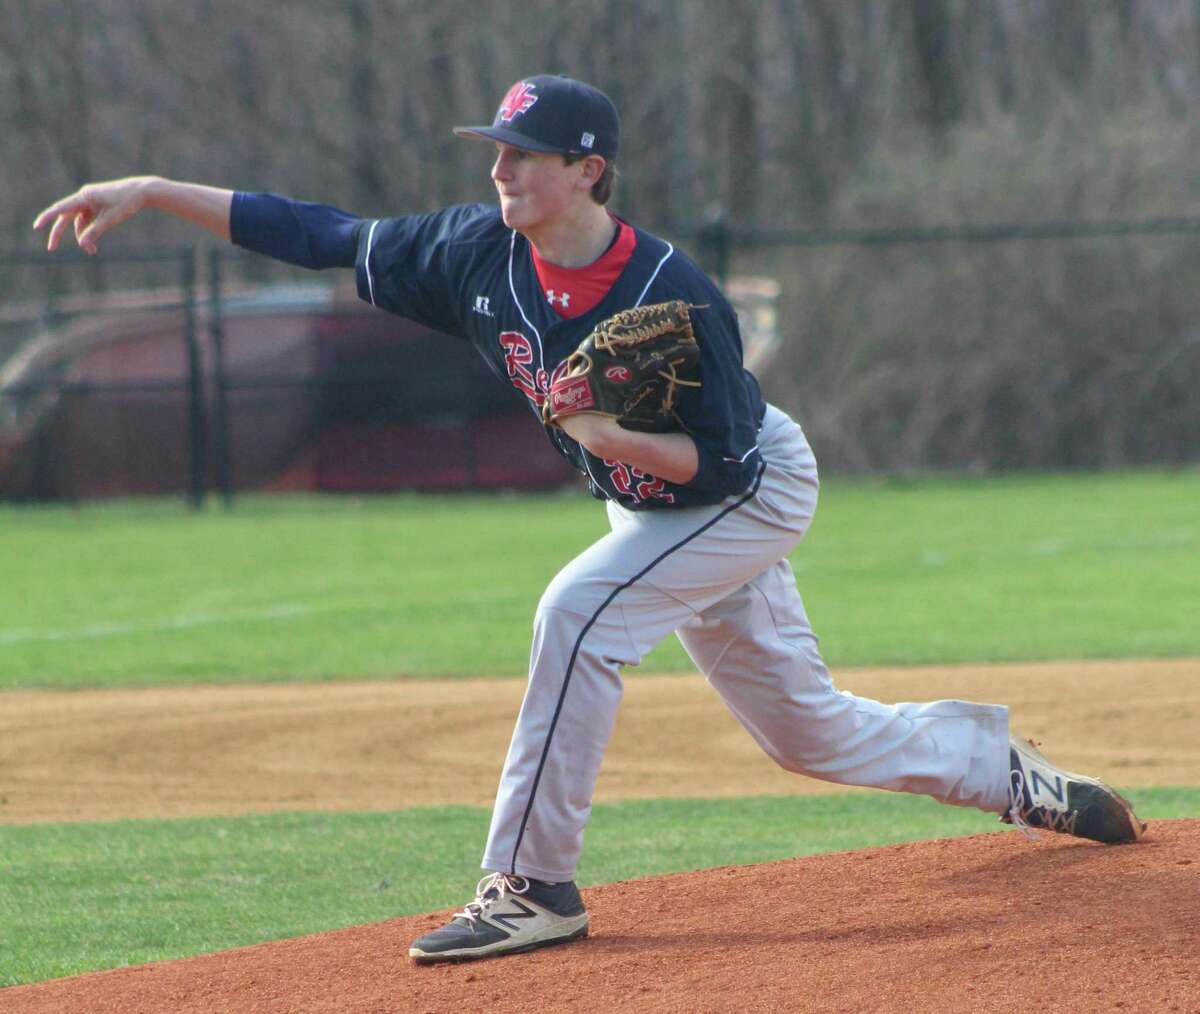 New Fairfield's Jake Smith pitched a complete game in the baseball game against Masuk at New Fairfield High School April 26, 2018.